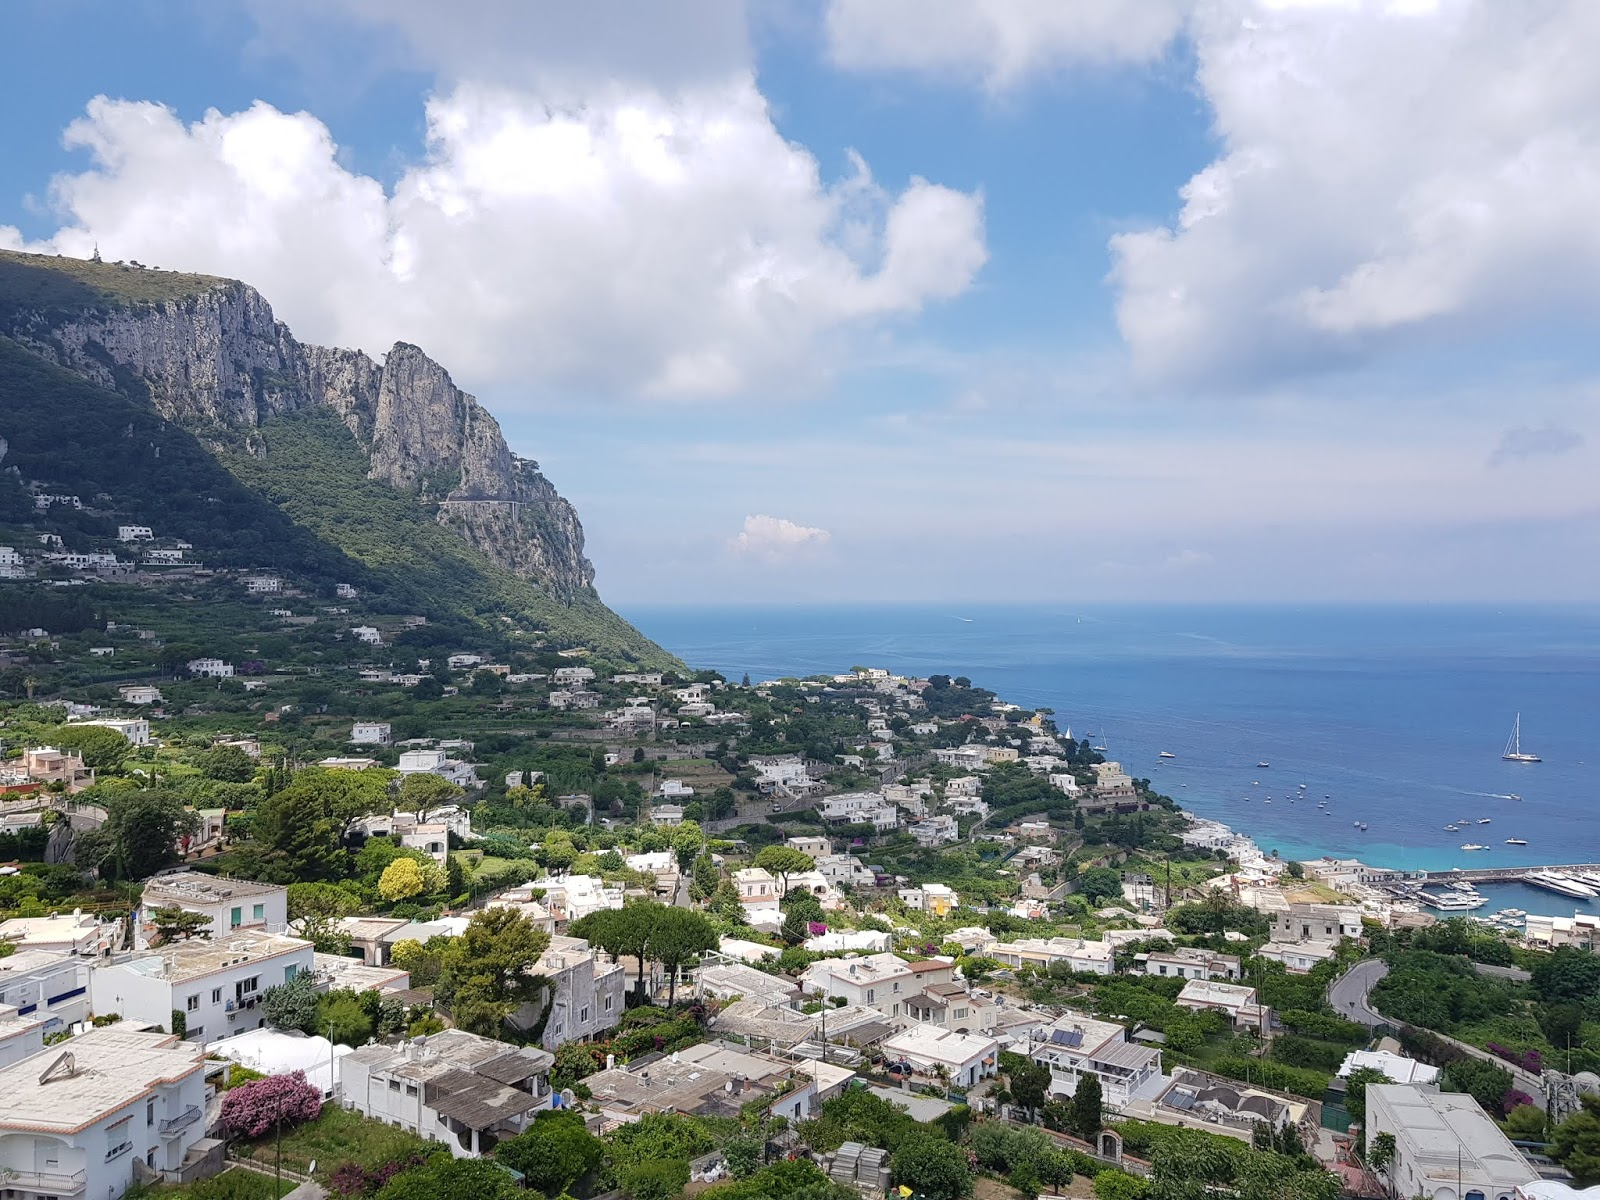 italy capri ferry sorrento cliffs visit tourist sightseeing